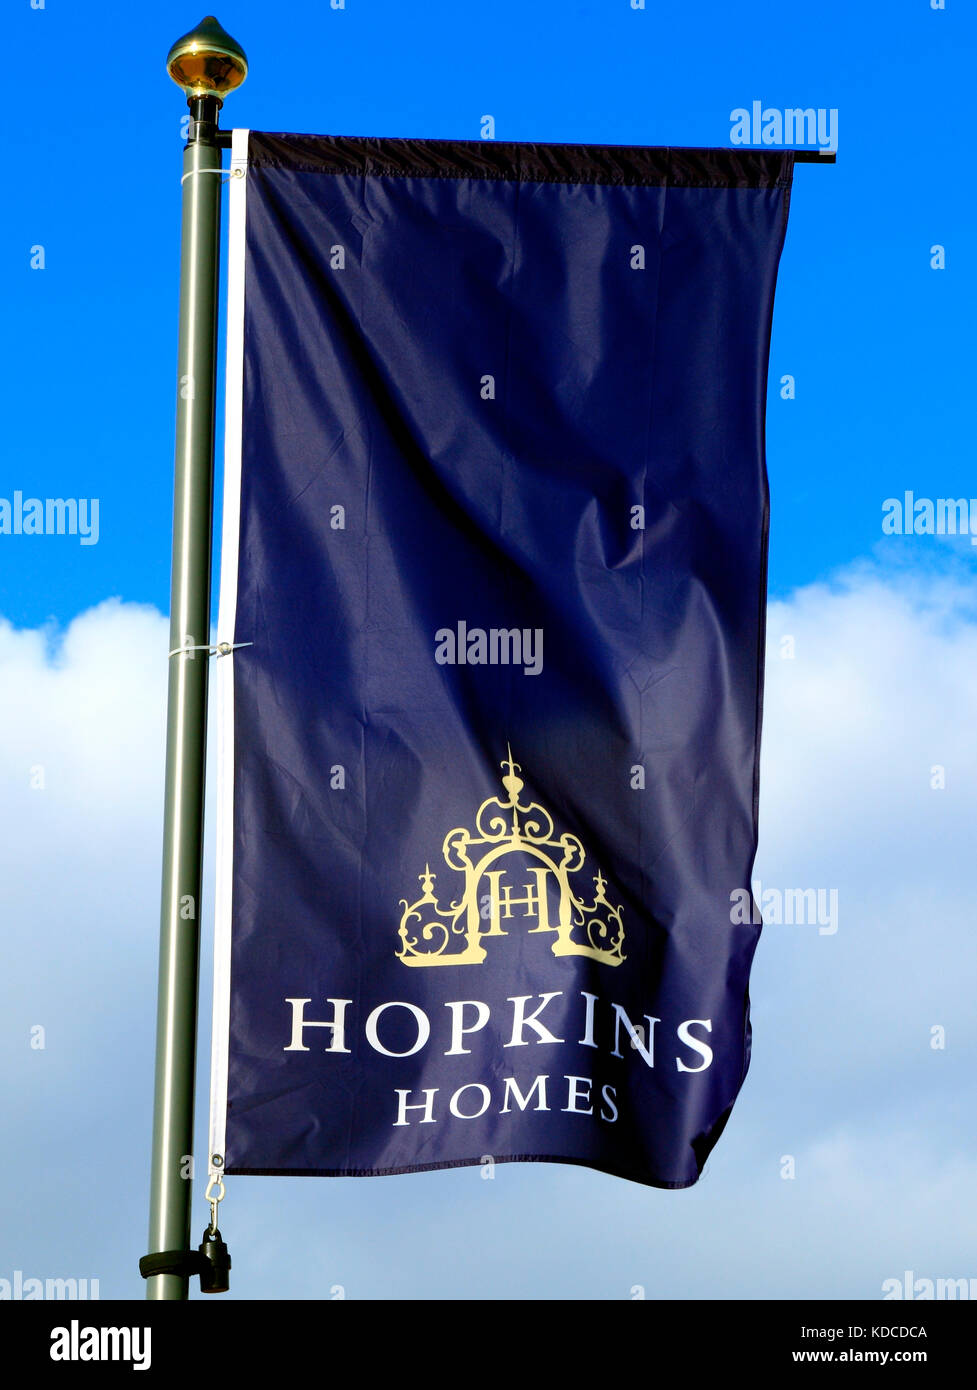 Hopkins Homes, housing developers,builders, building site, site, new housing, sign, logo, banner, Heacham, Norfolk, - Stock Image